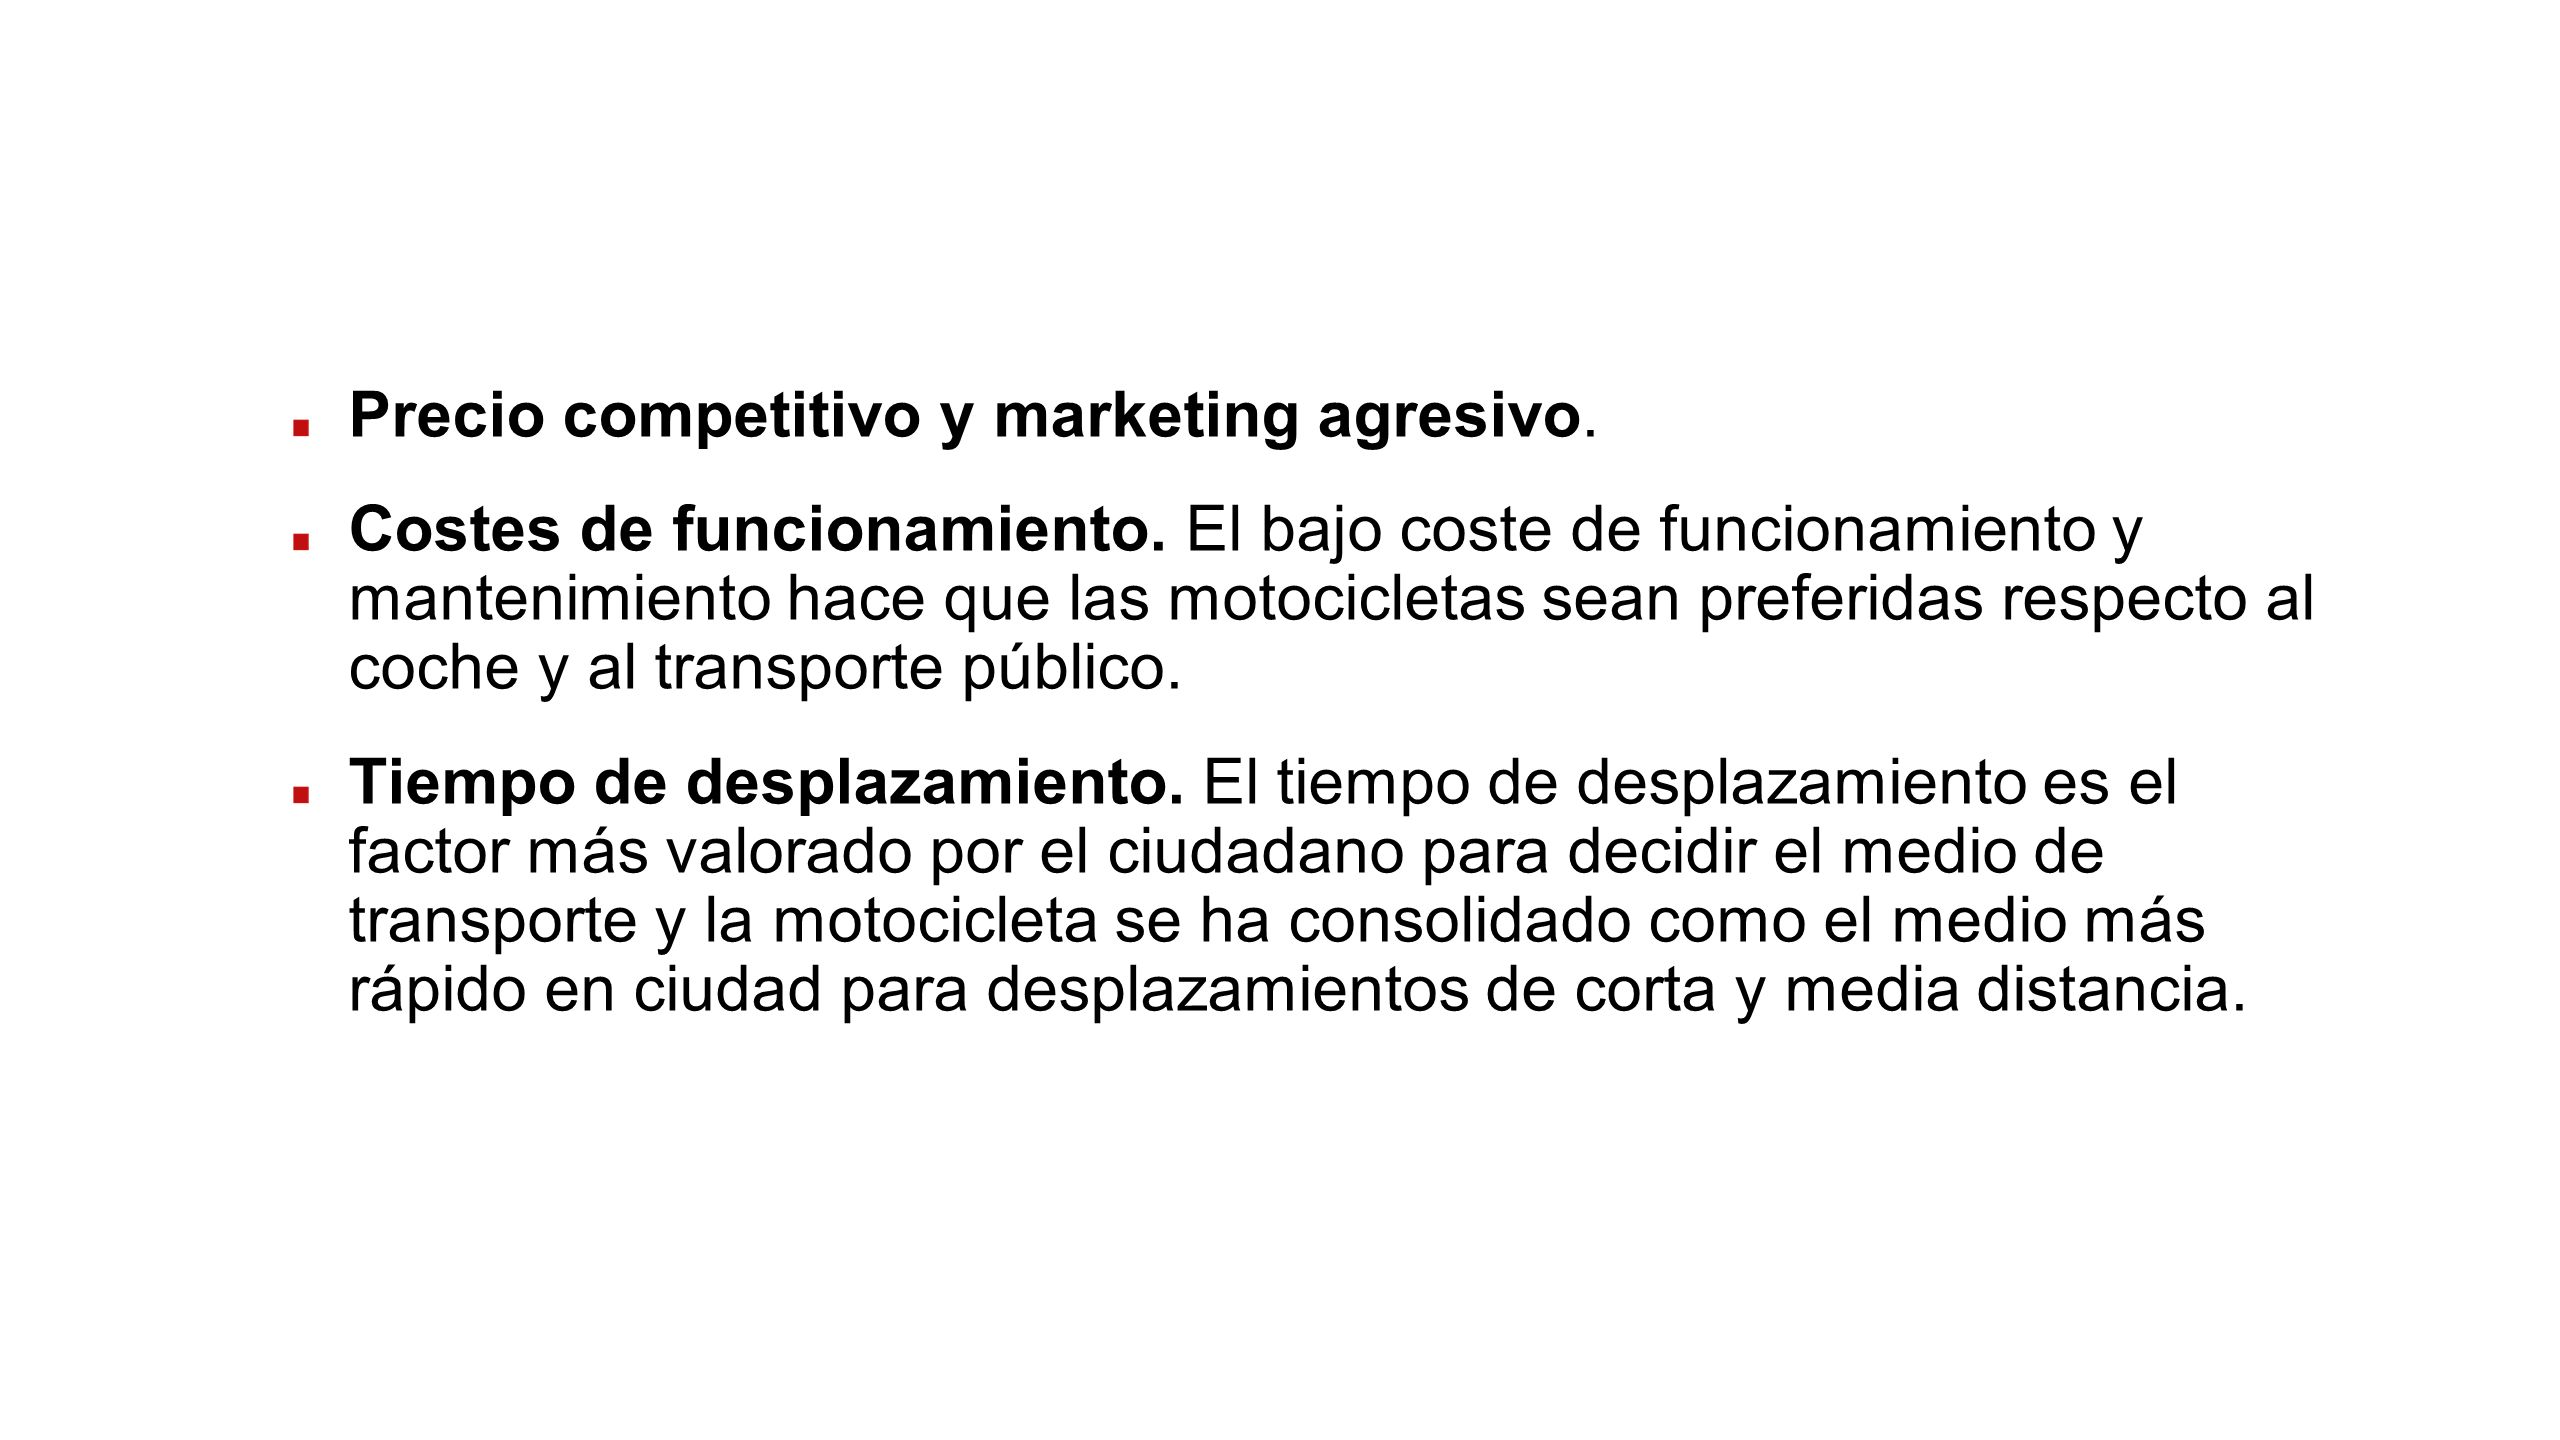 Precio competitivo y marketing agresivo.Costes de funcionamiento.